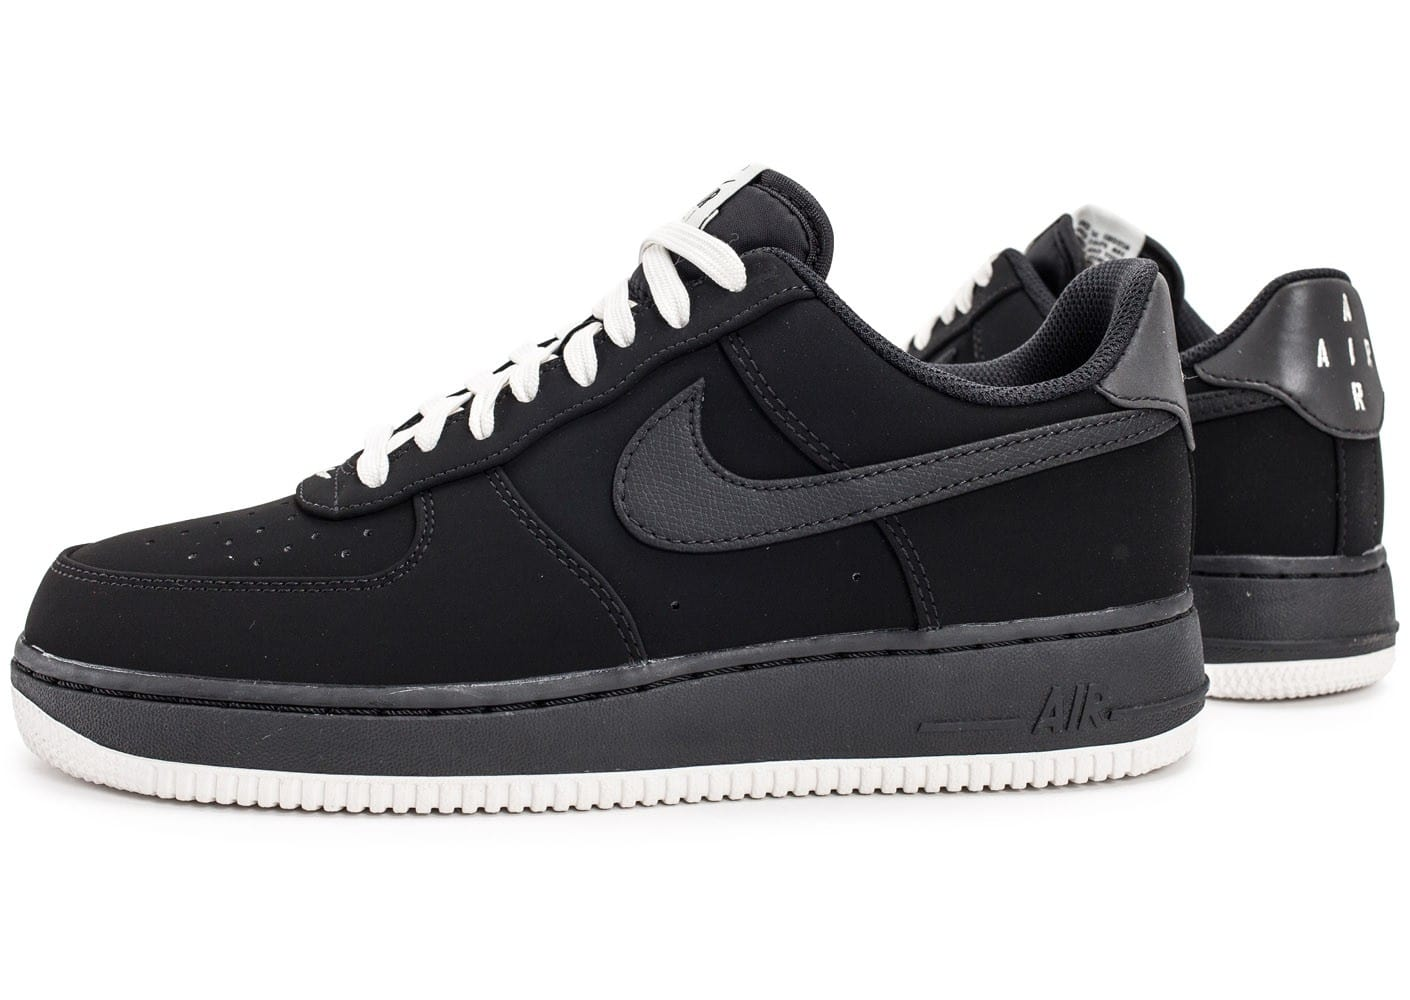 Force 1 Chausport Homme Air Low Baskets Chaussures Nike Sail Black PwXnOkN80